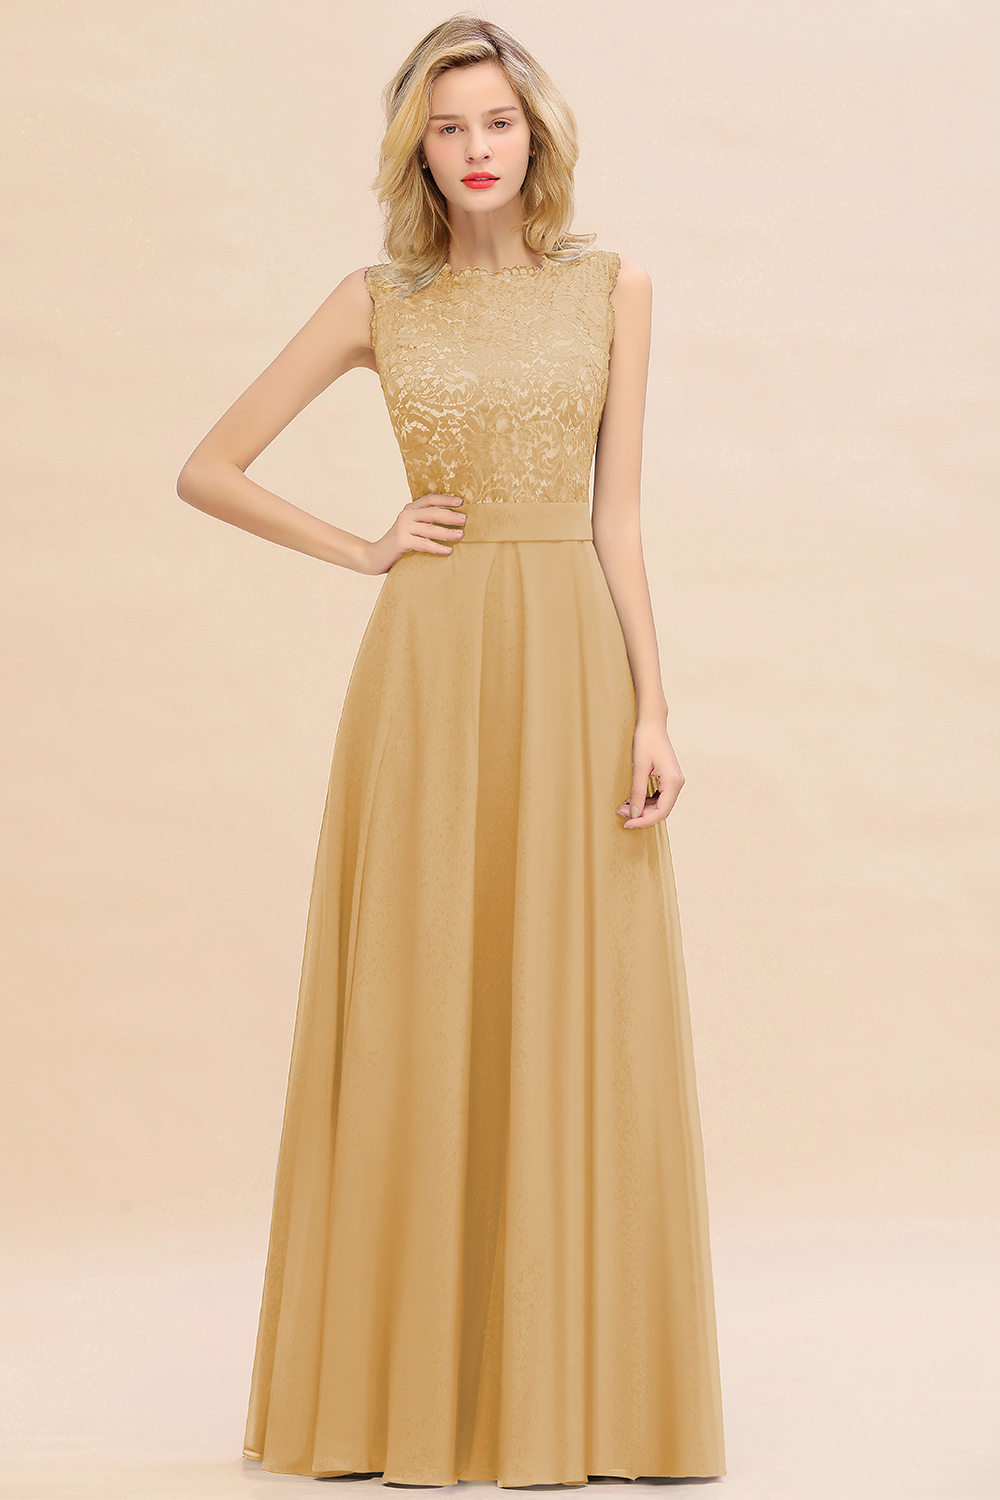 BMbridal Exquisite Scoop Chiffon Lace Bridesmaid Dresses with V-Back